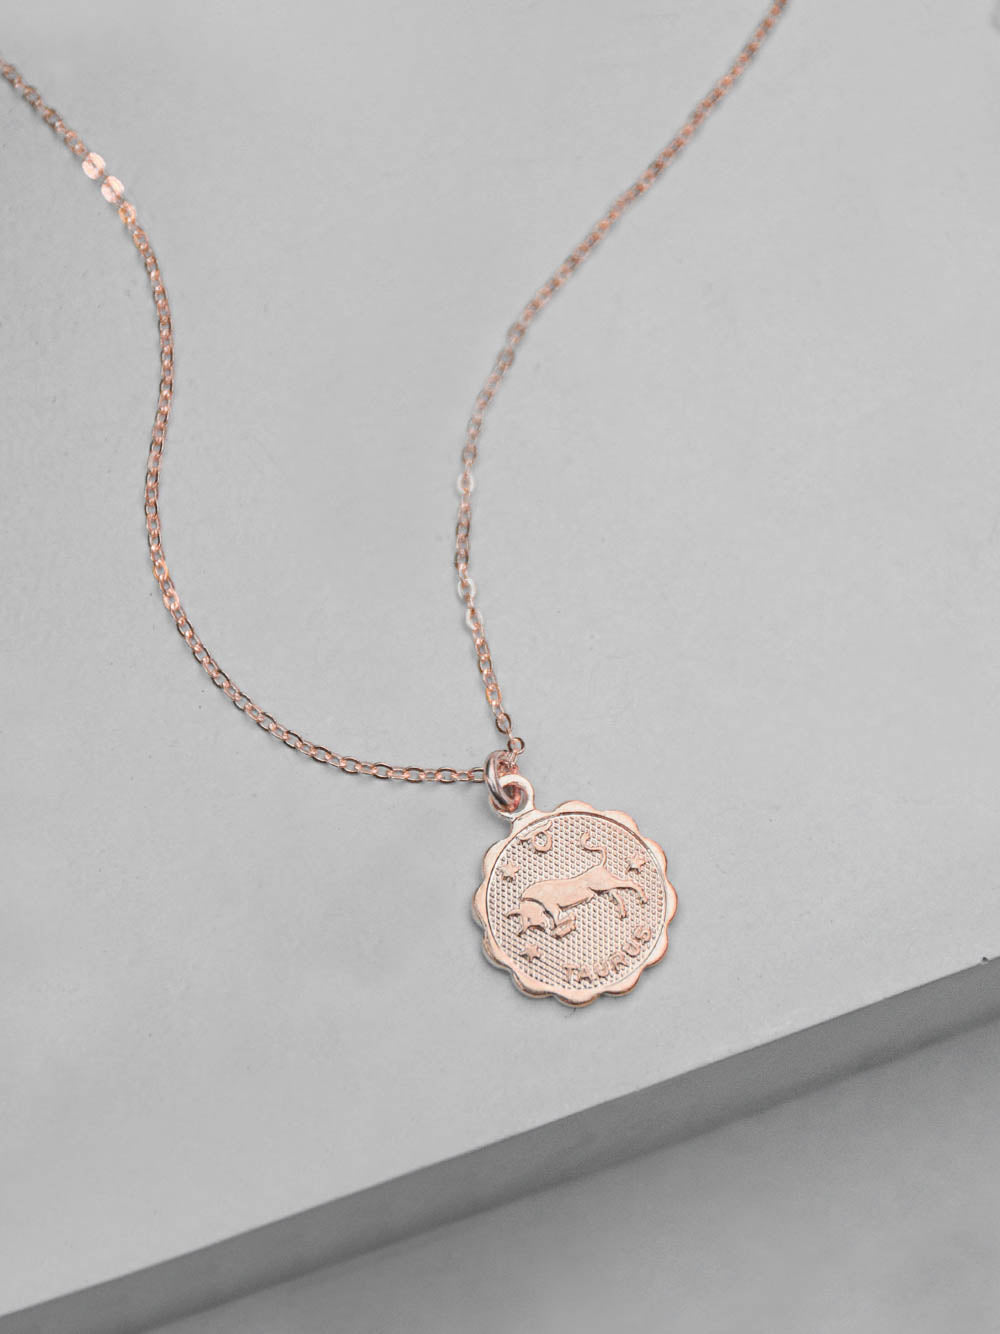 Rose Gold Zodiac Charm Necklace by The Faint Hearted Jewelry